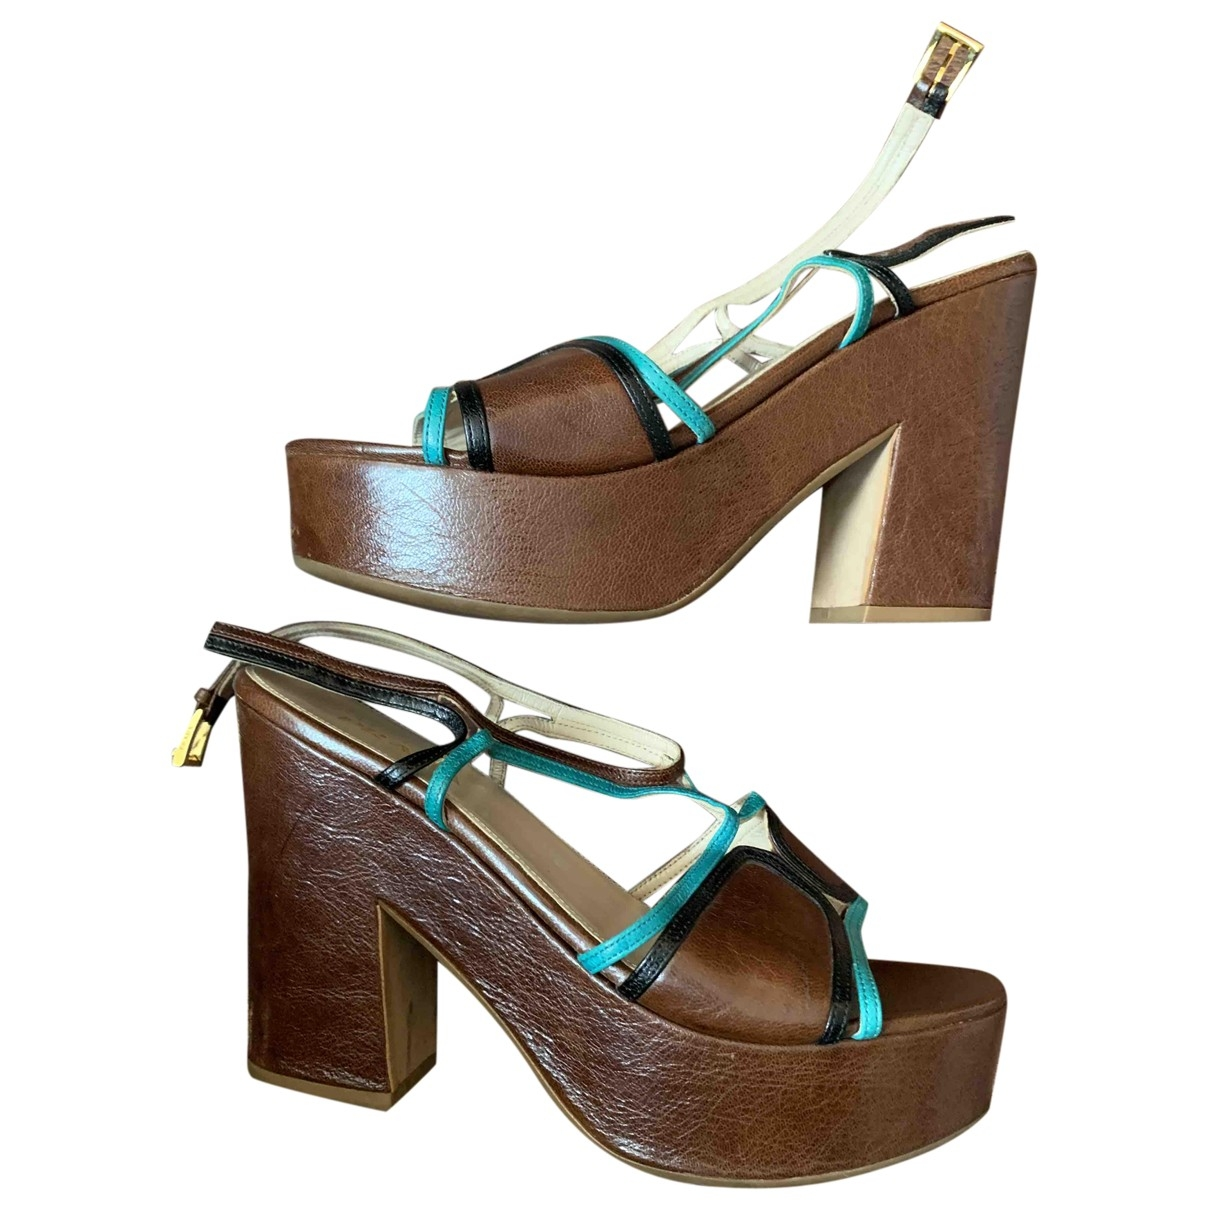 Prada \N Brown Leather Sandals for Women 39 EU